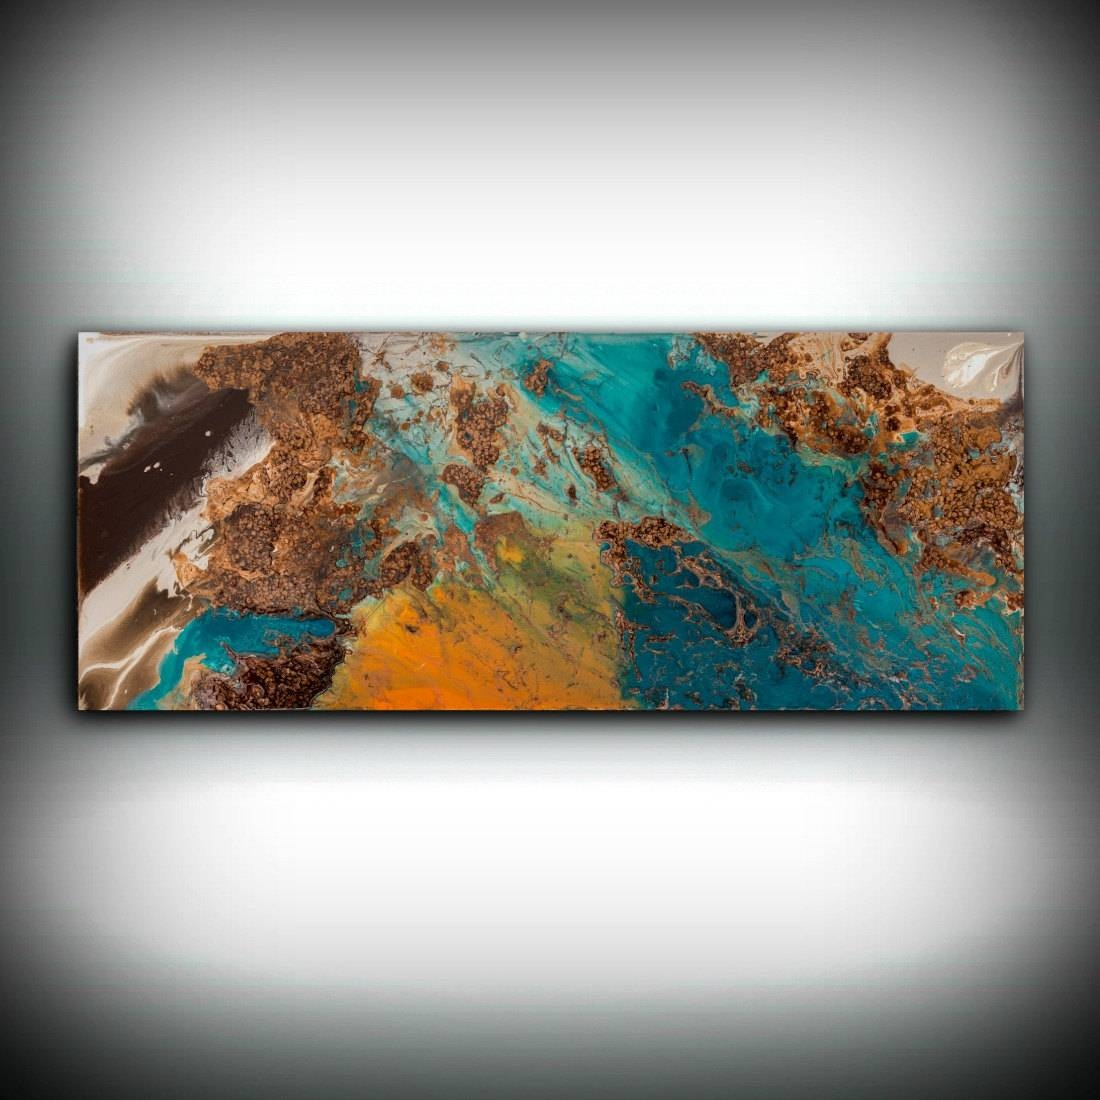 Wall Art Designs: Amazing Wall Art Sale Framed On Sale Art On Sale Regarding Recent Turquoise And Brown Wall Art (View 5 of 25)